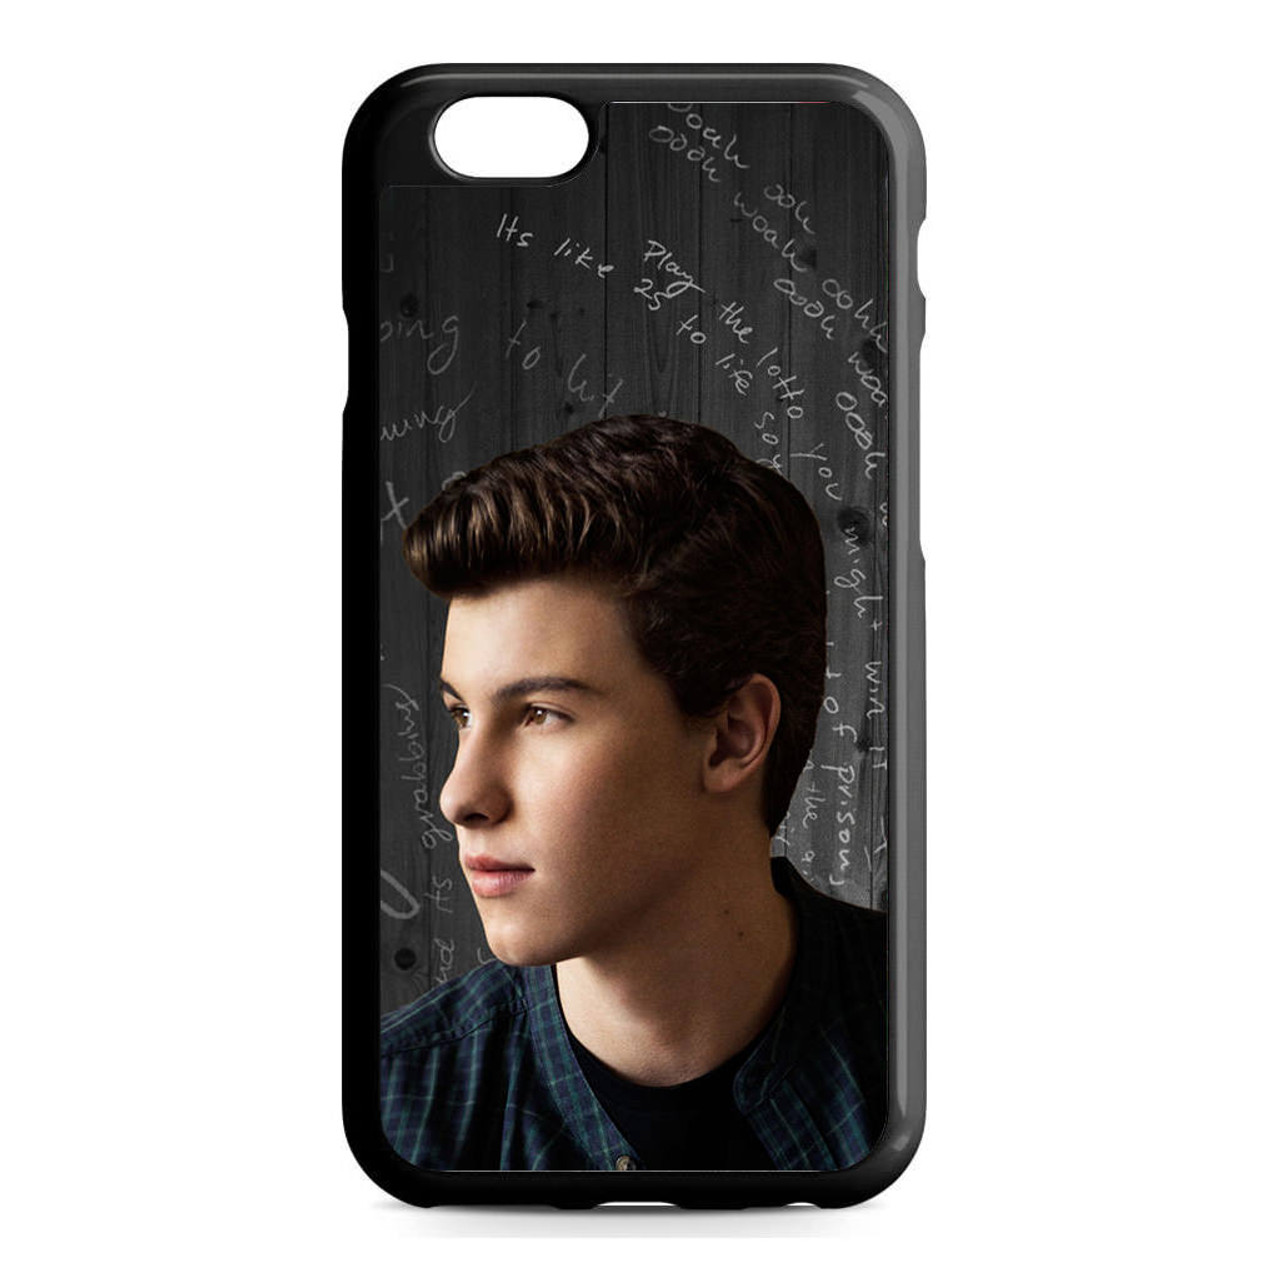 finest selection 6b6d4 74666 Shawn Mendes Something Big iPhone 6/6S Case